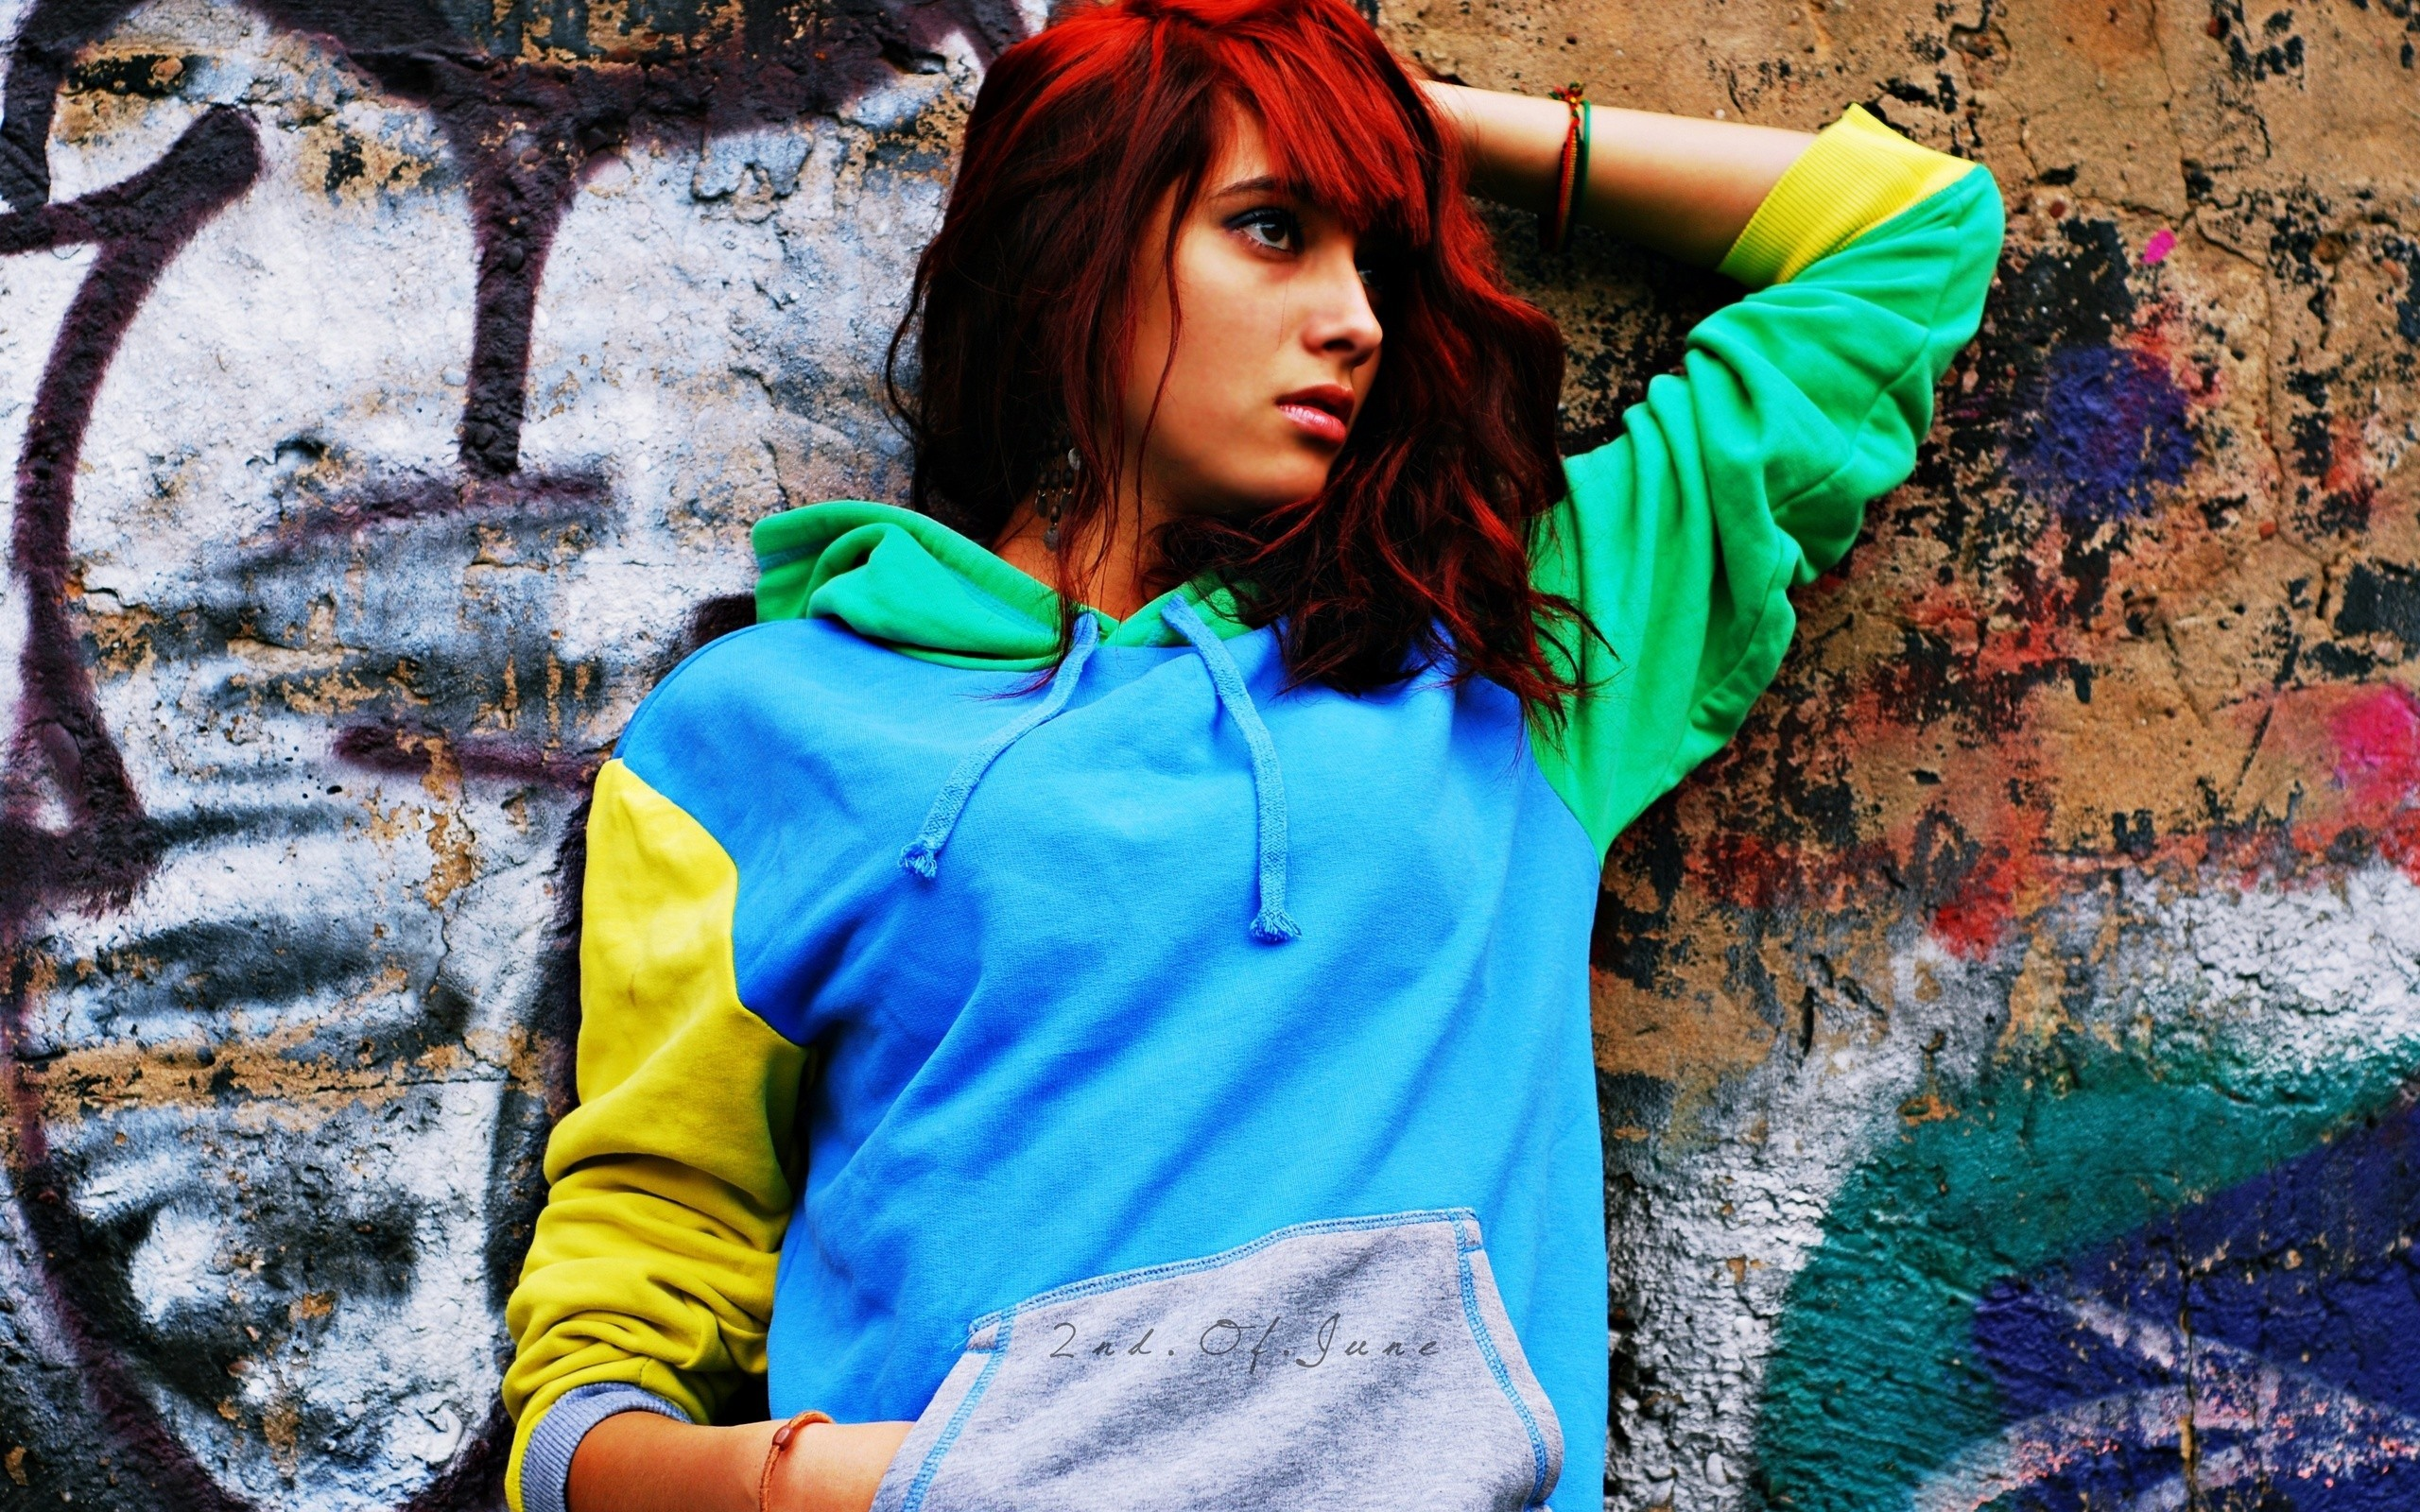 People 2560x1600 redhead colorful graffiti hoods women wall women outdoors model sweatshirts